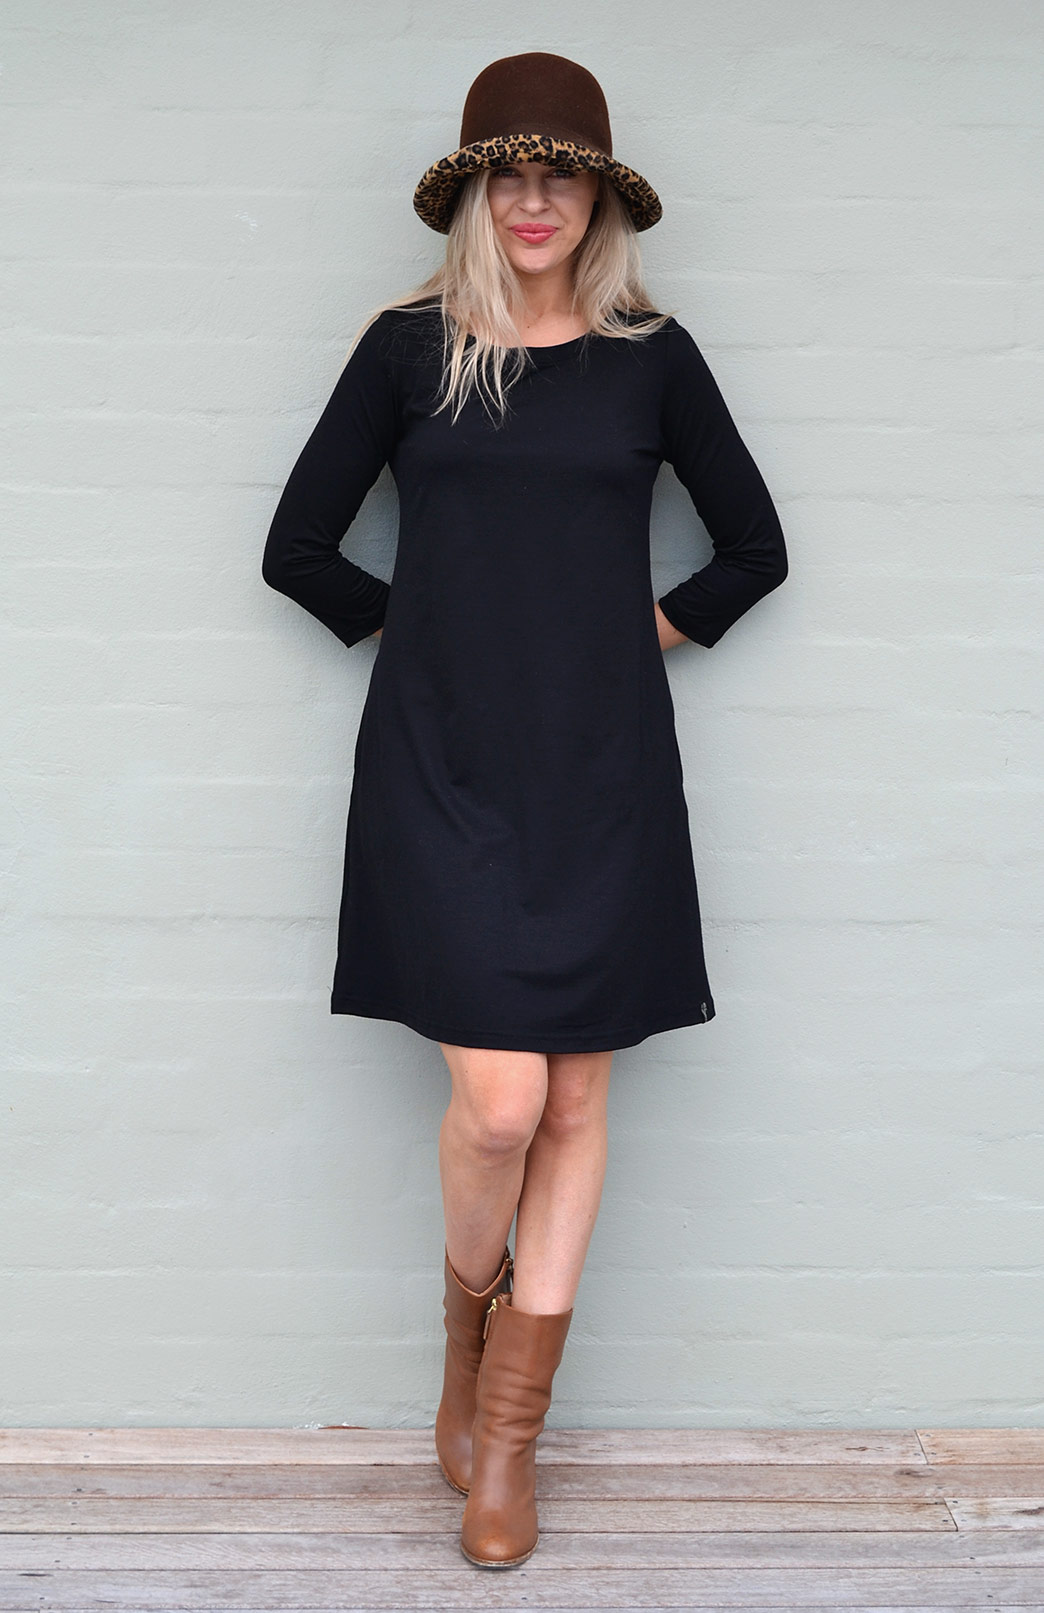 Ellie Swing Dress - Women's Black Superfine Merino Wool Swing Dress with sleeves and pockets - Smitten Merino Tasmania Australia